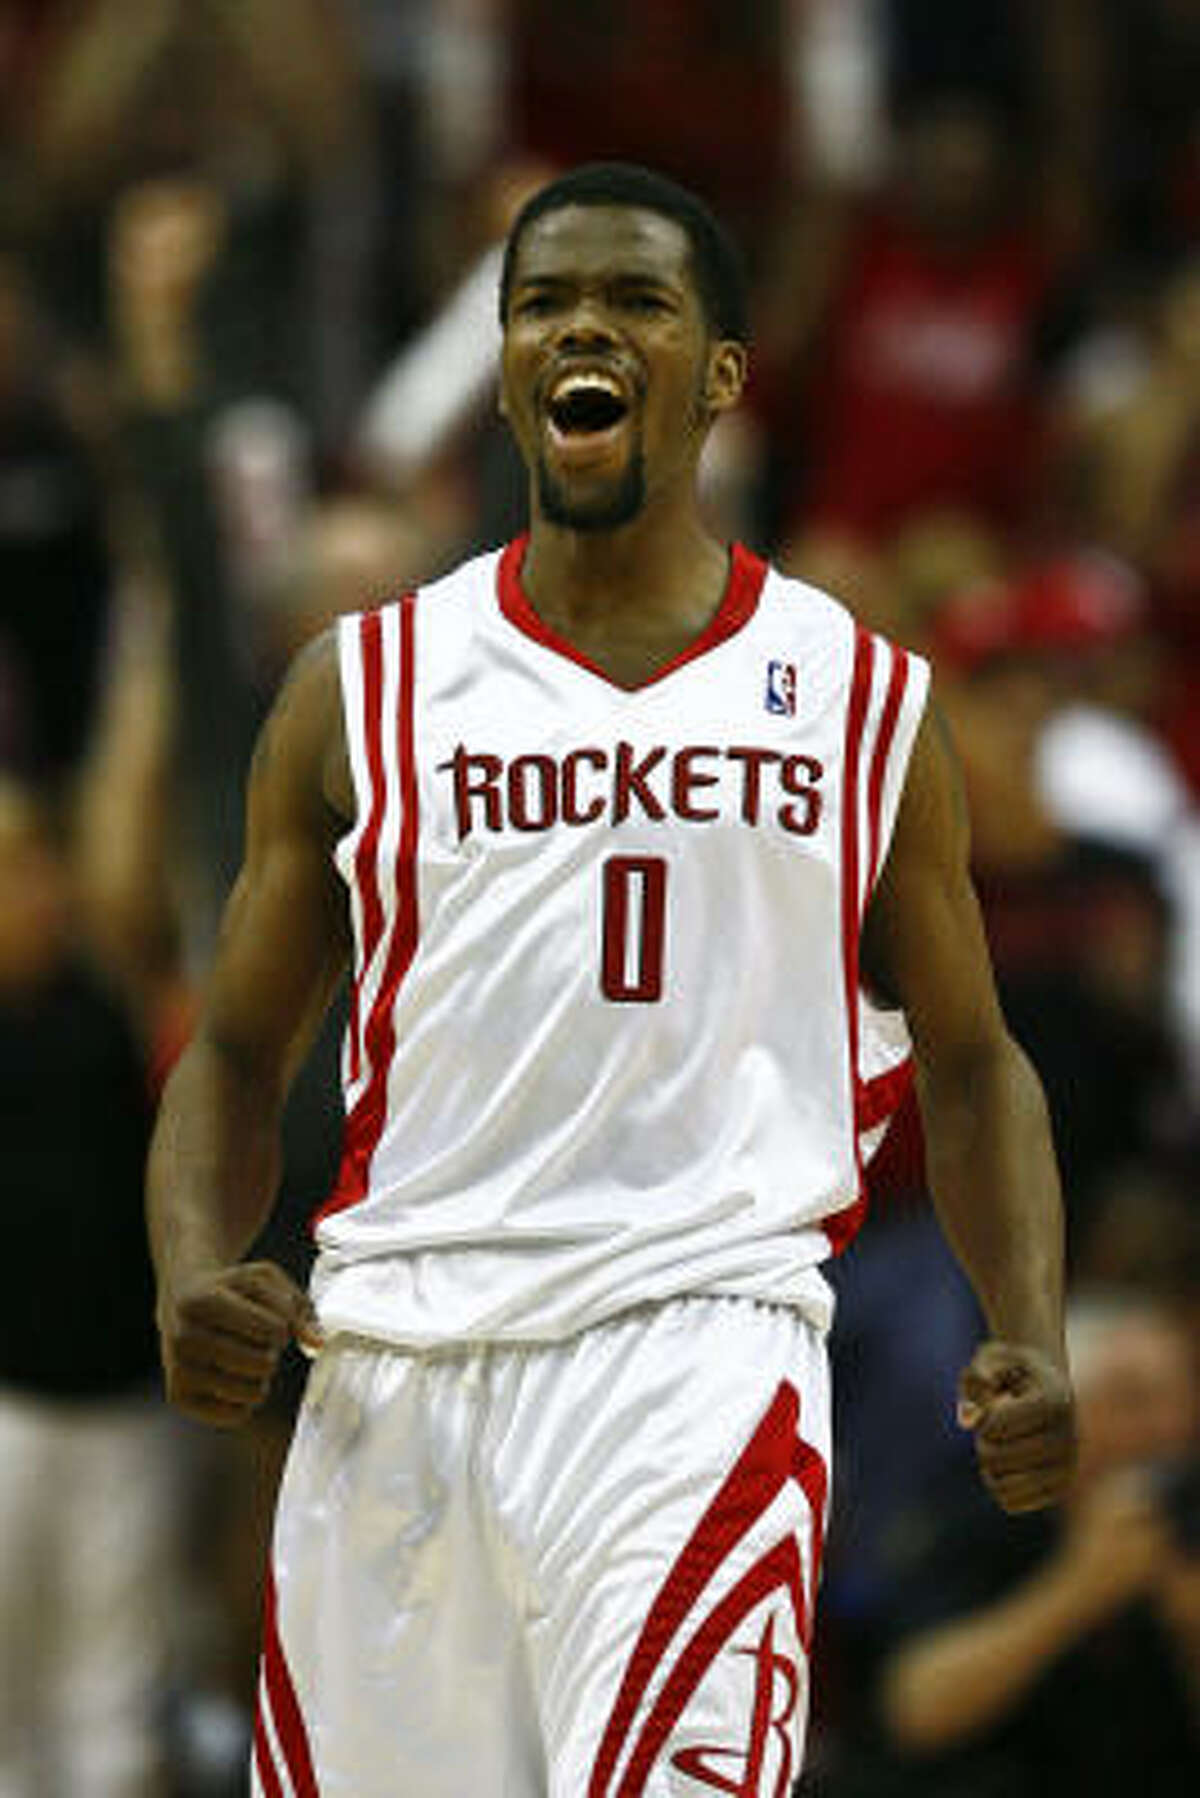 Aaron Brooks could be the first Rockets player to win an individual NBA performance award since Steve Francis was the Co-rookie of the Year in 2000.